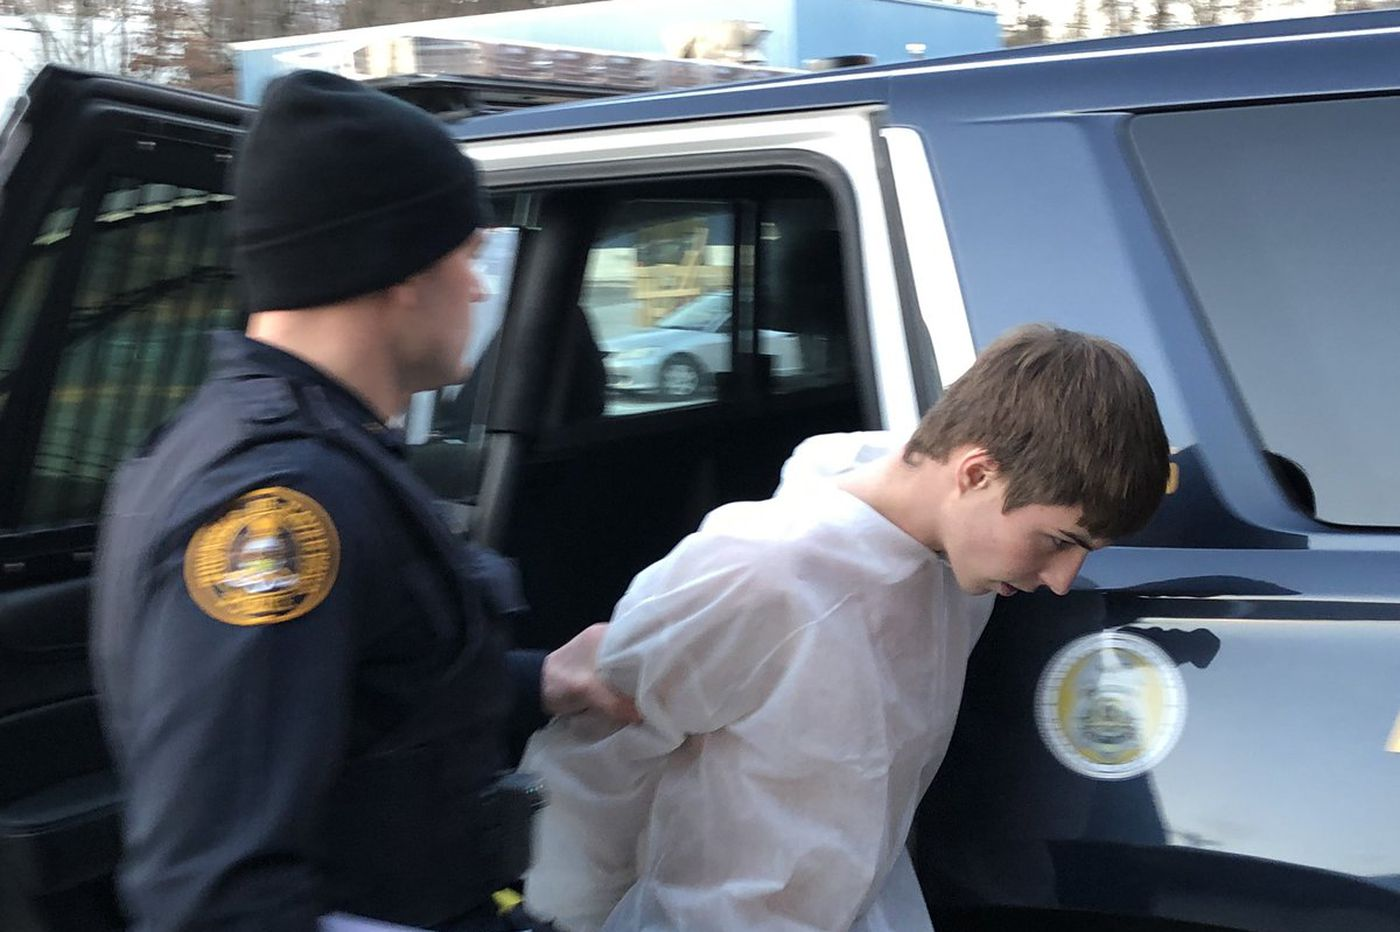 Havertown teen who shot a classmate during a botched drug deal is sentenced to 15 to 30 months in jail